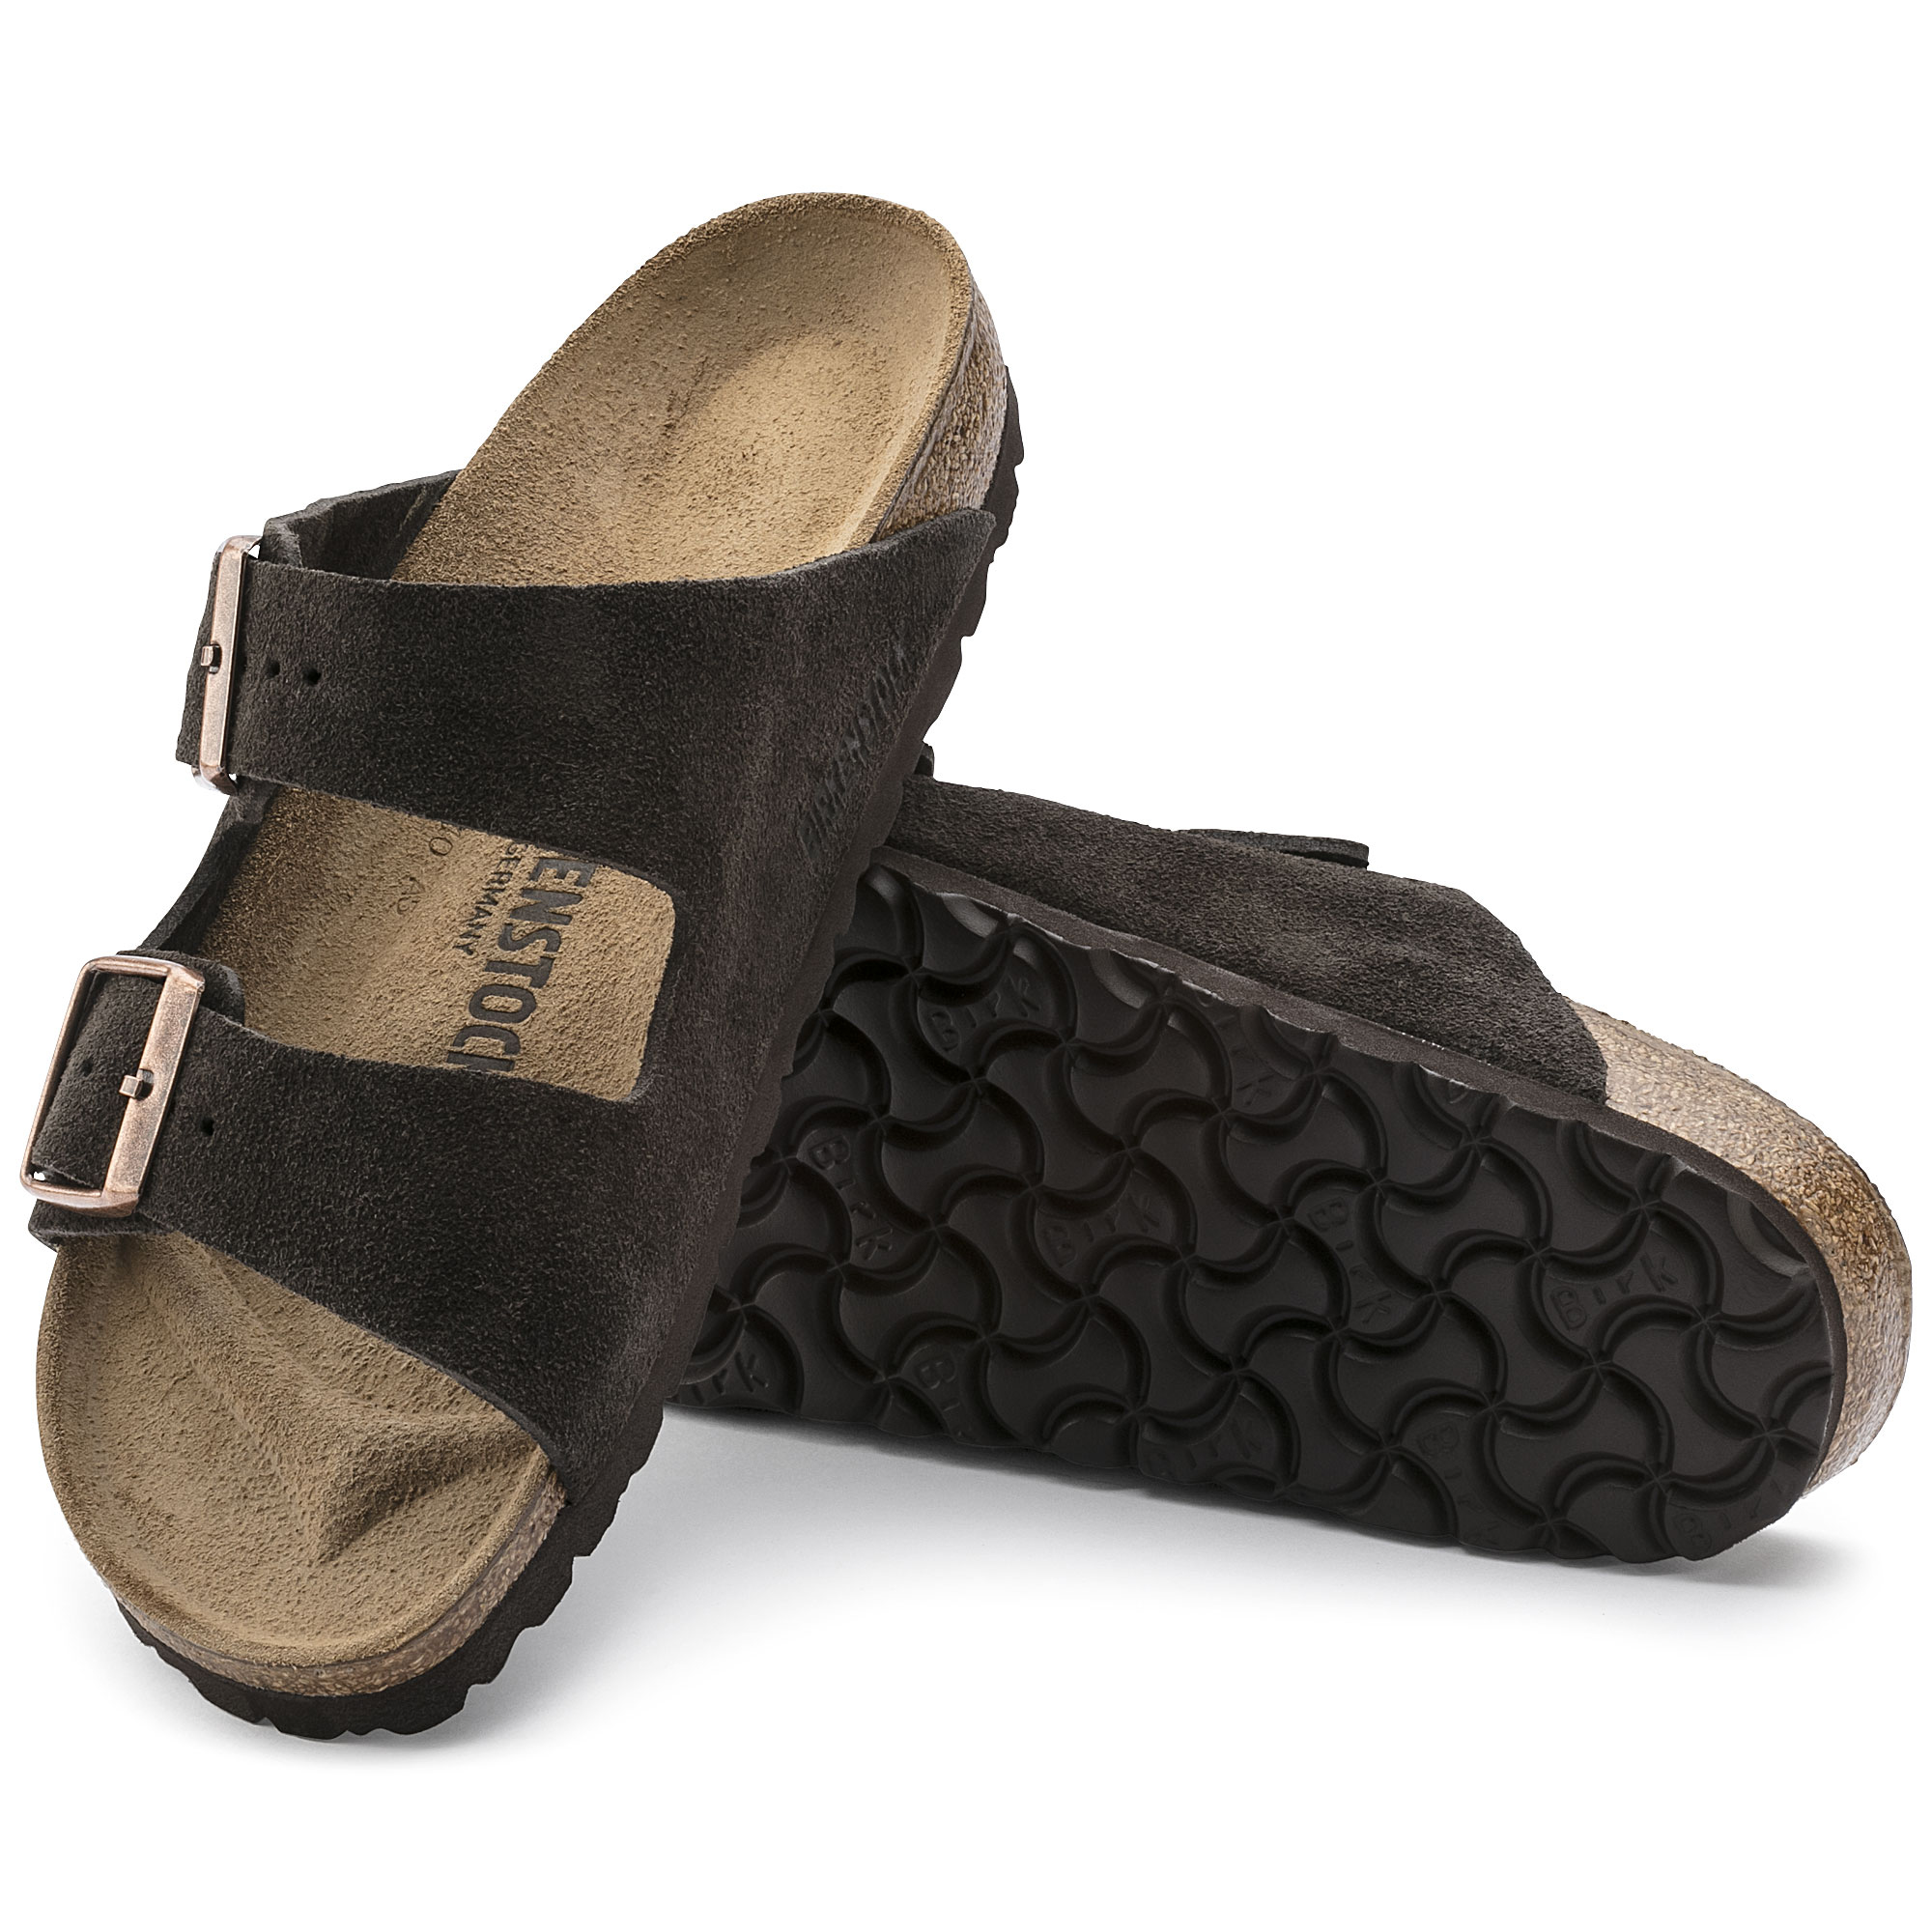 fbd9bb2307bd Arizona Suede Leather Mocha  Arizona Suede Leather Mocha ...